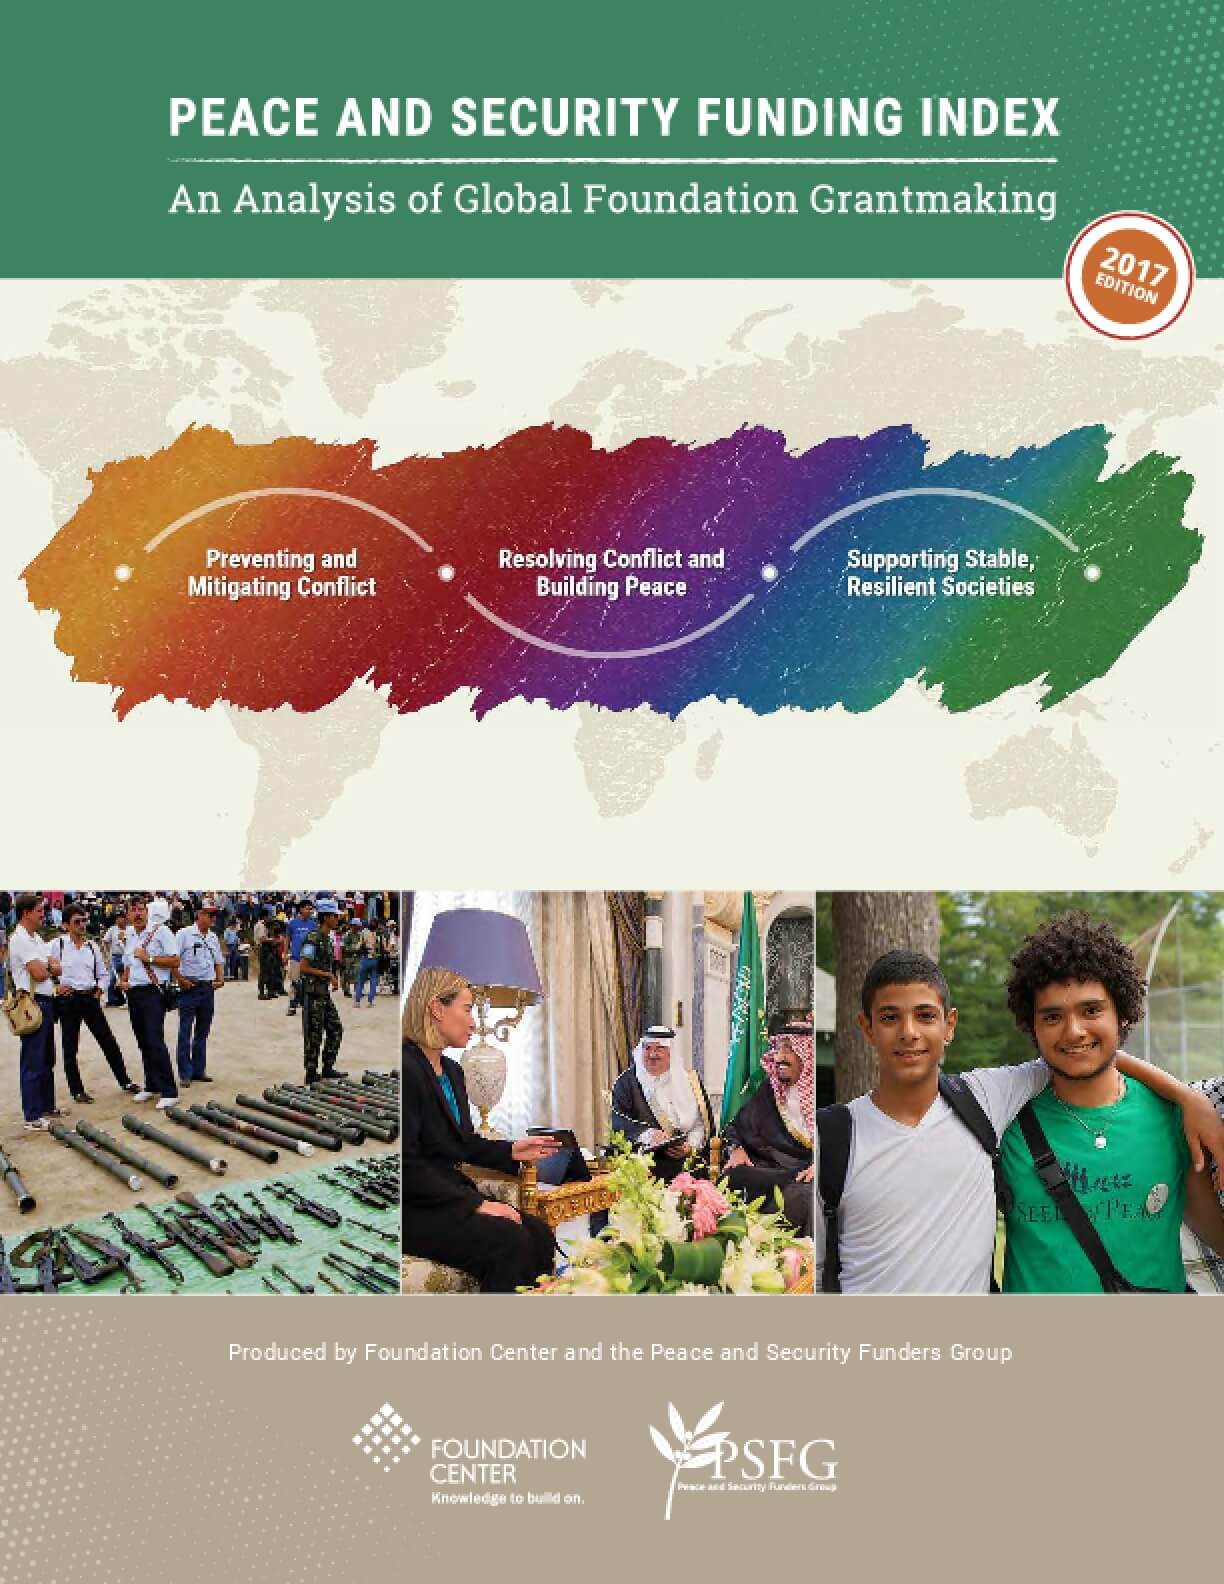 Peace and Security Funding Index: An Analysis of Global Foundation Grantmaking - 2017 Edition